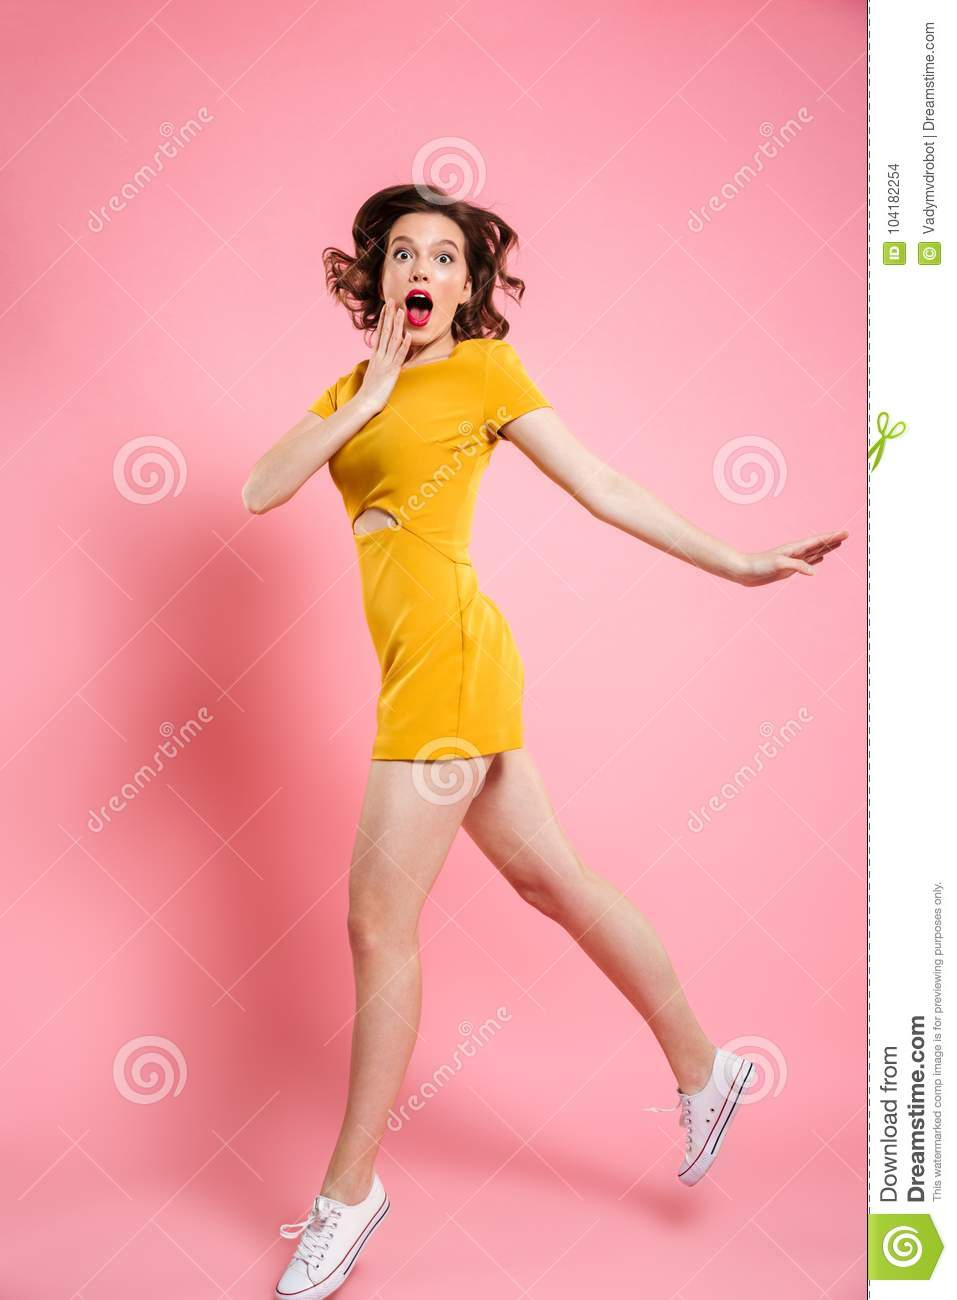 Full length portrait of surprised beautiful young woman in elegant yellow dress looking at camera while jumping over pink